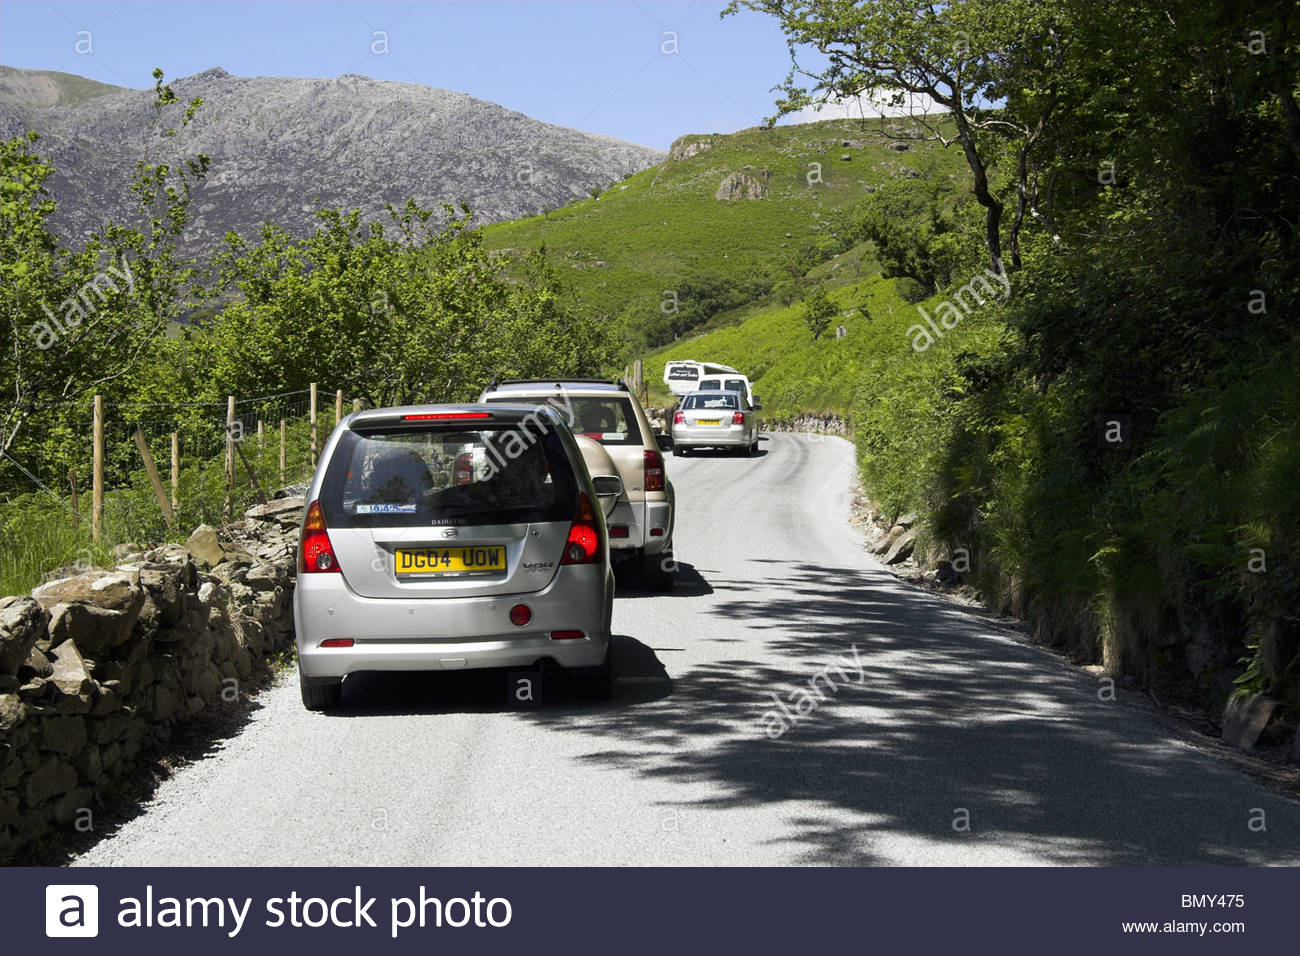 Congestion on the A498 road in Snowdonia National Park, Gwynedd, north Wales, UK. Stock Photo